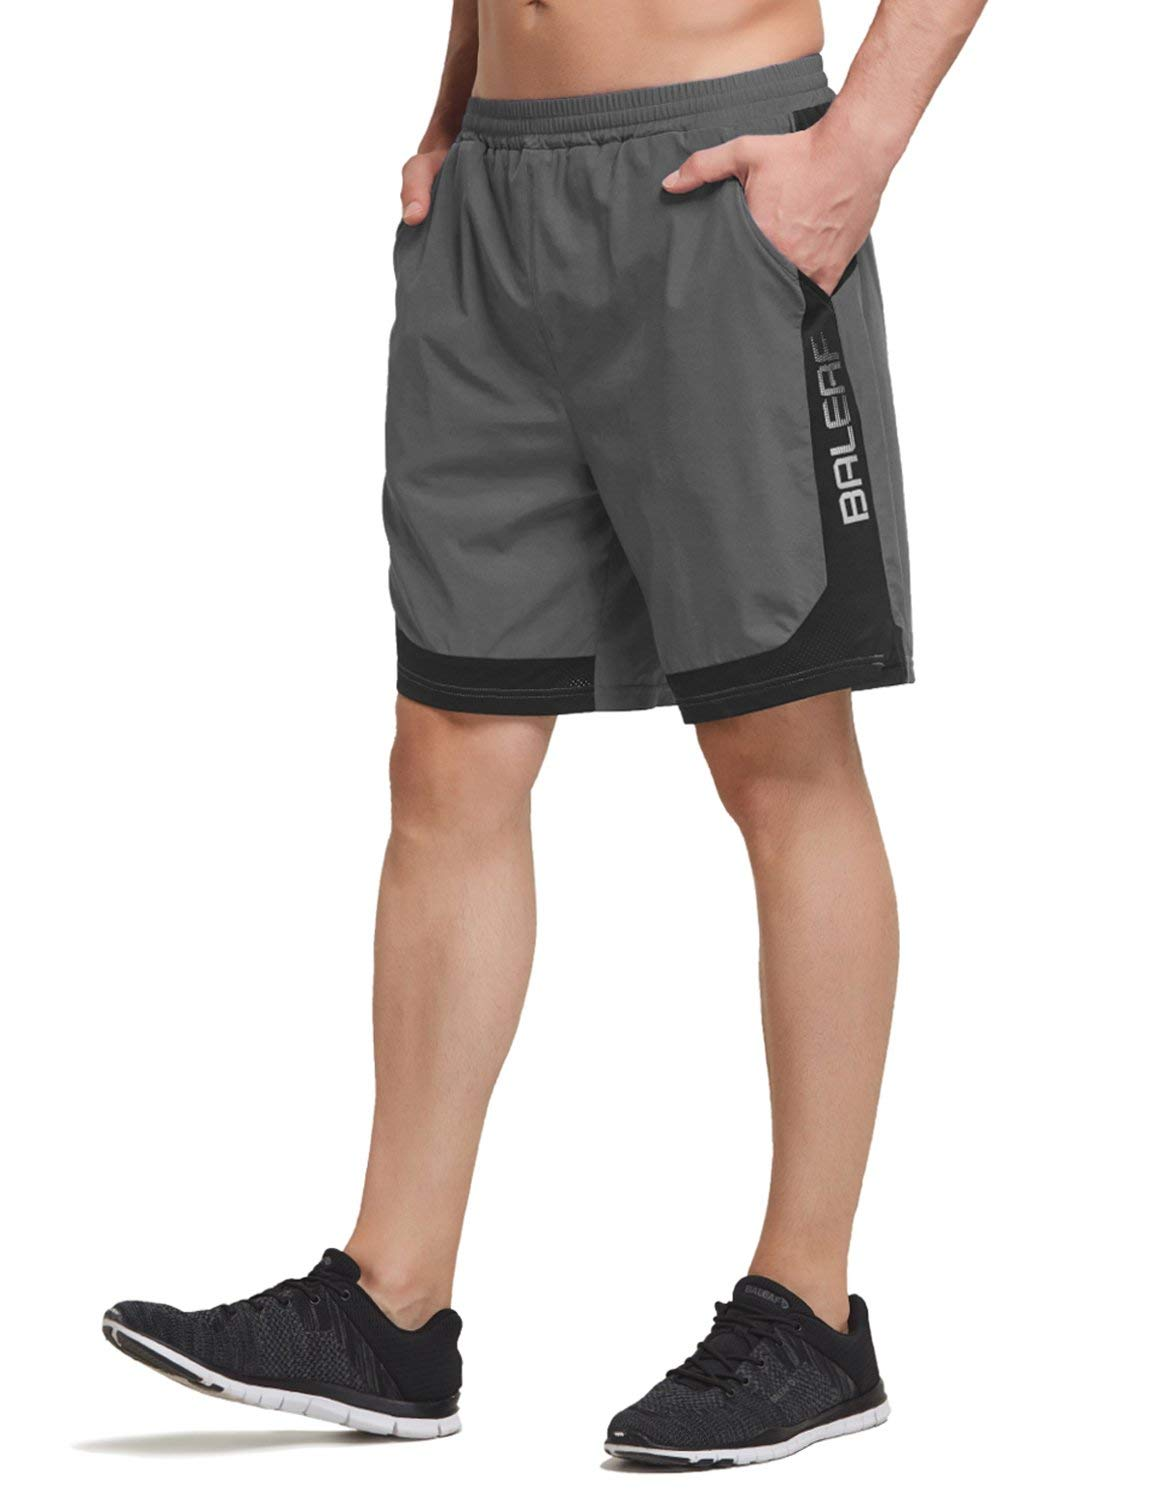 Baleaf Men's 7 Inches Quick Dry Running Shorts Mesh Liner Zip Pockets Gray Size M by Baleaf